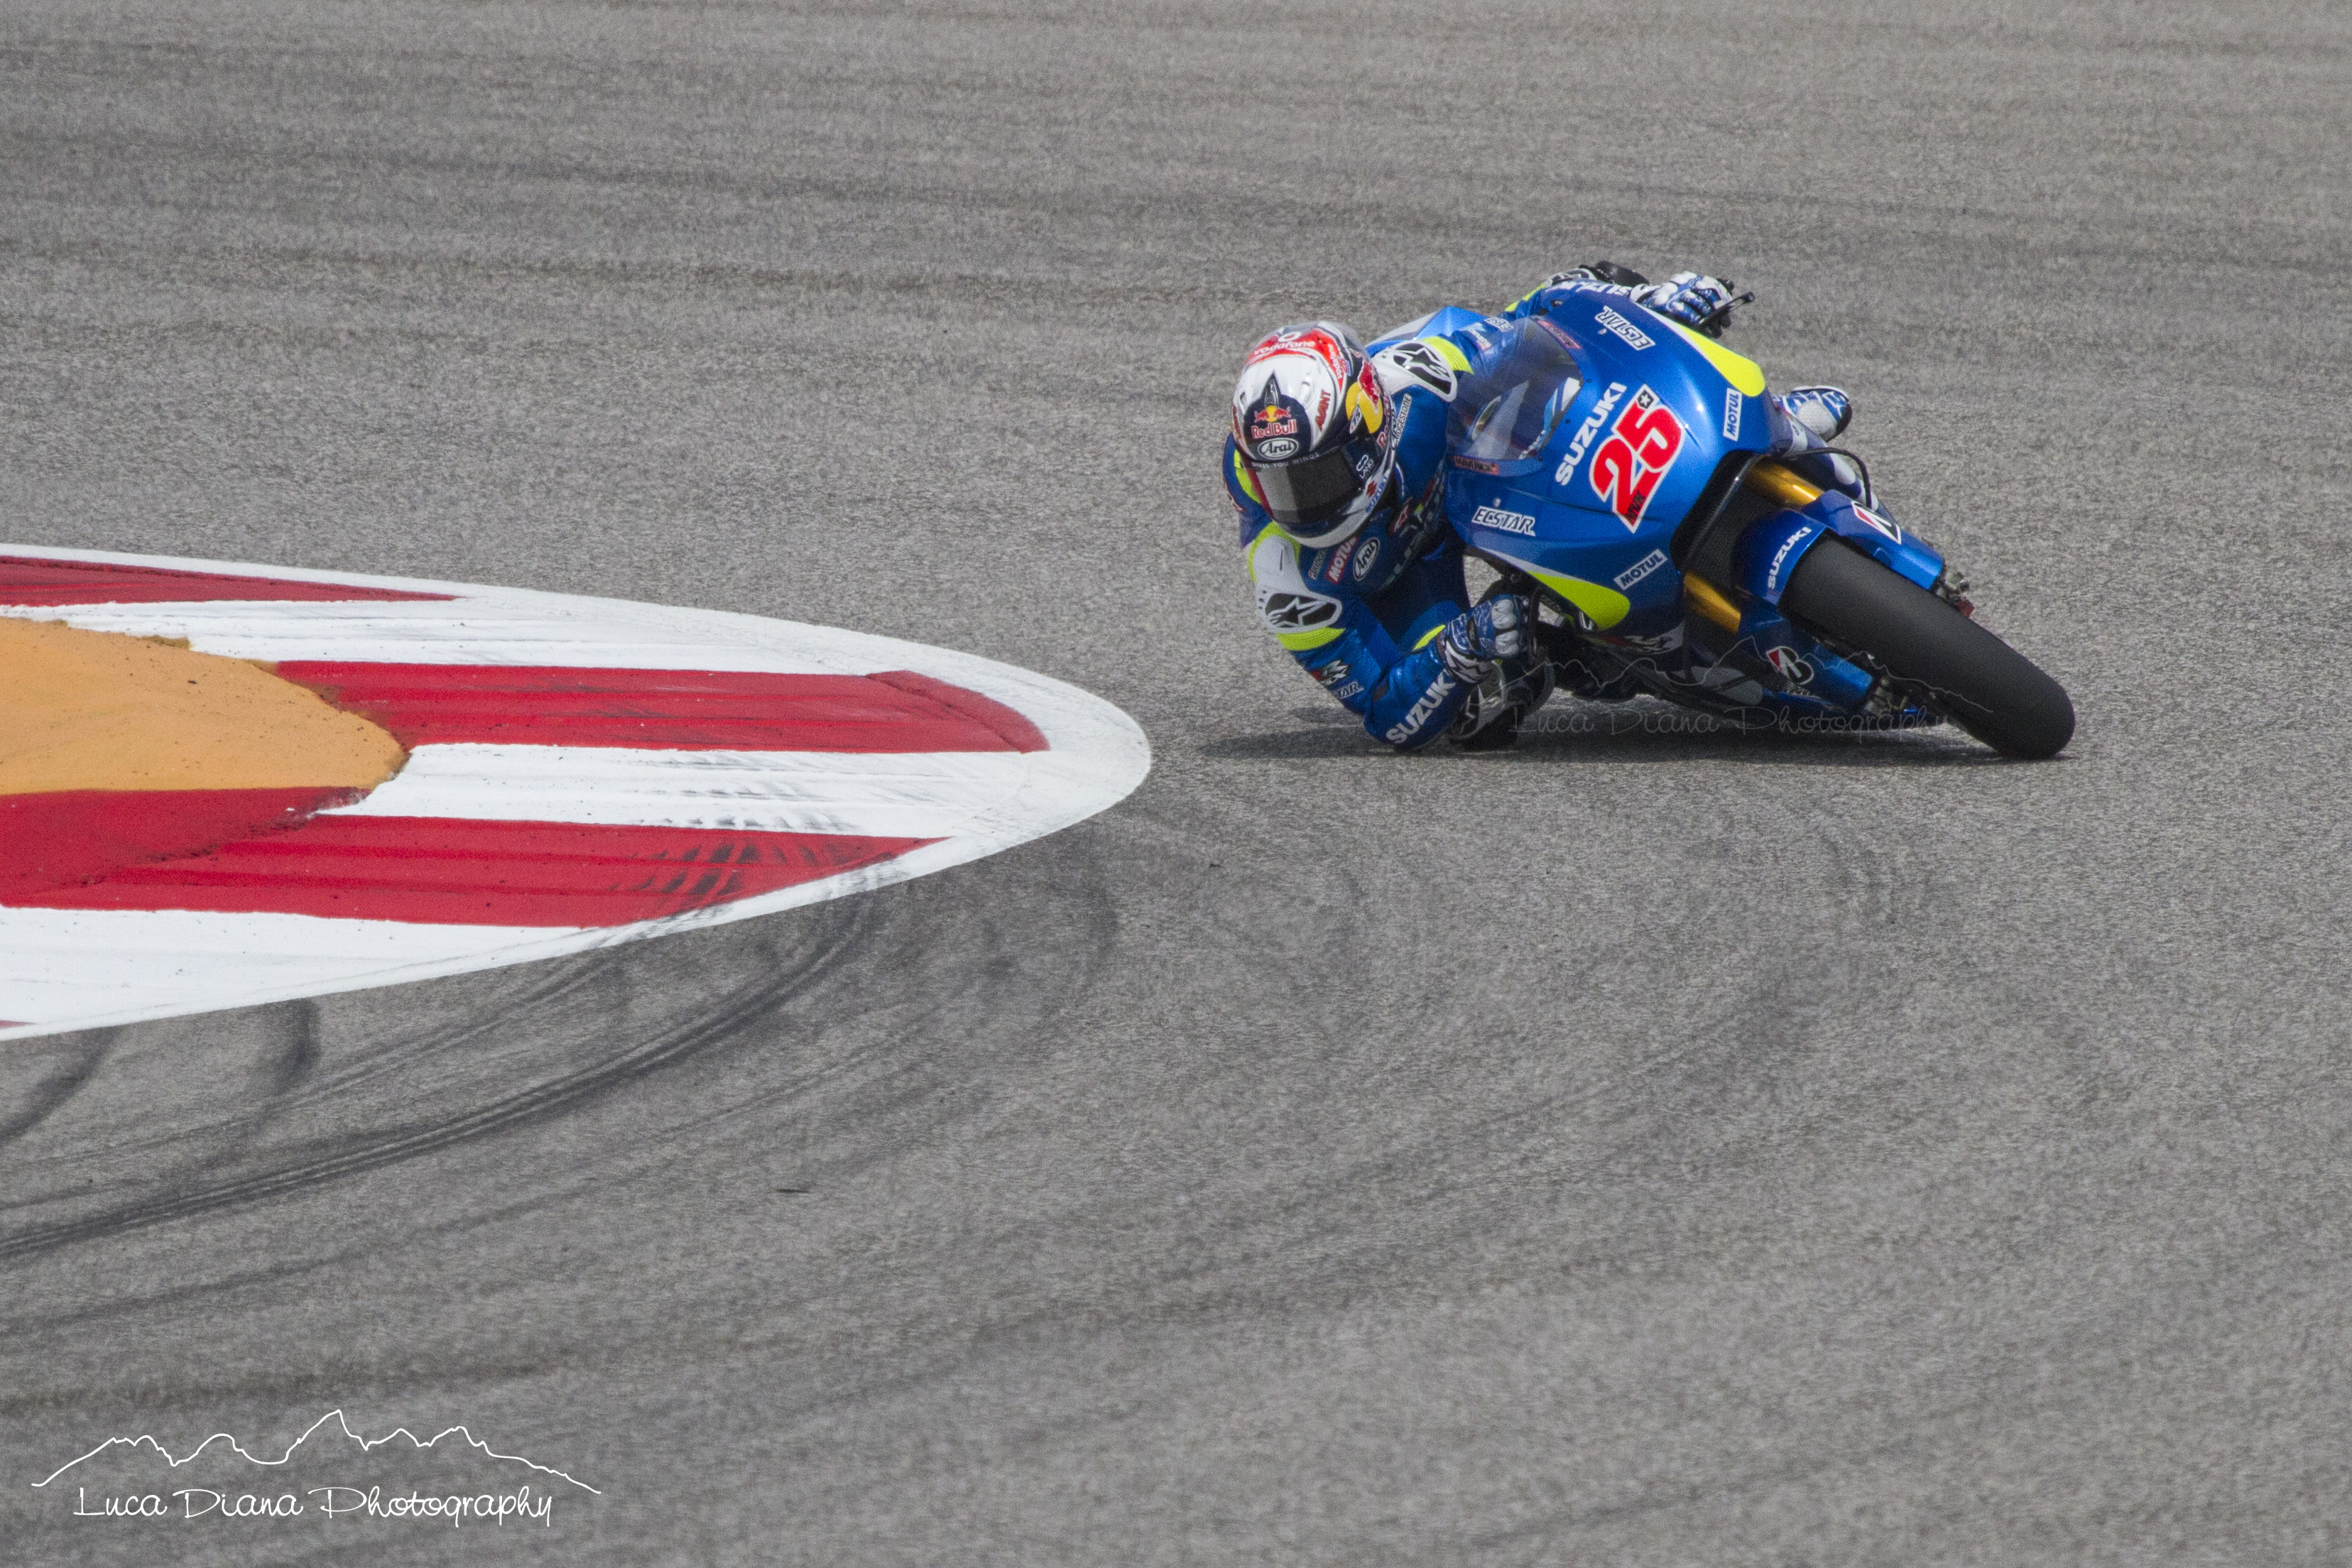 MotoGP Weekend at the Circuit of the Americas